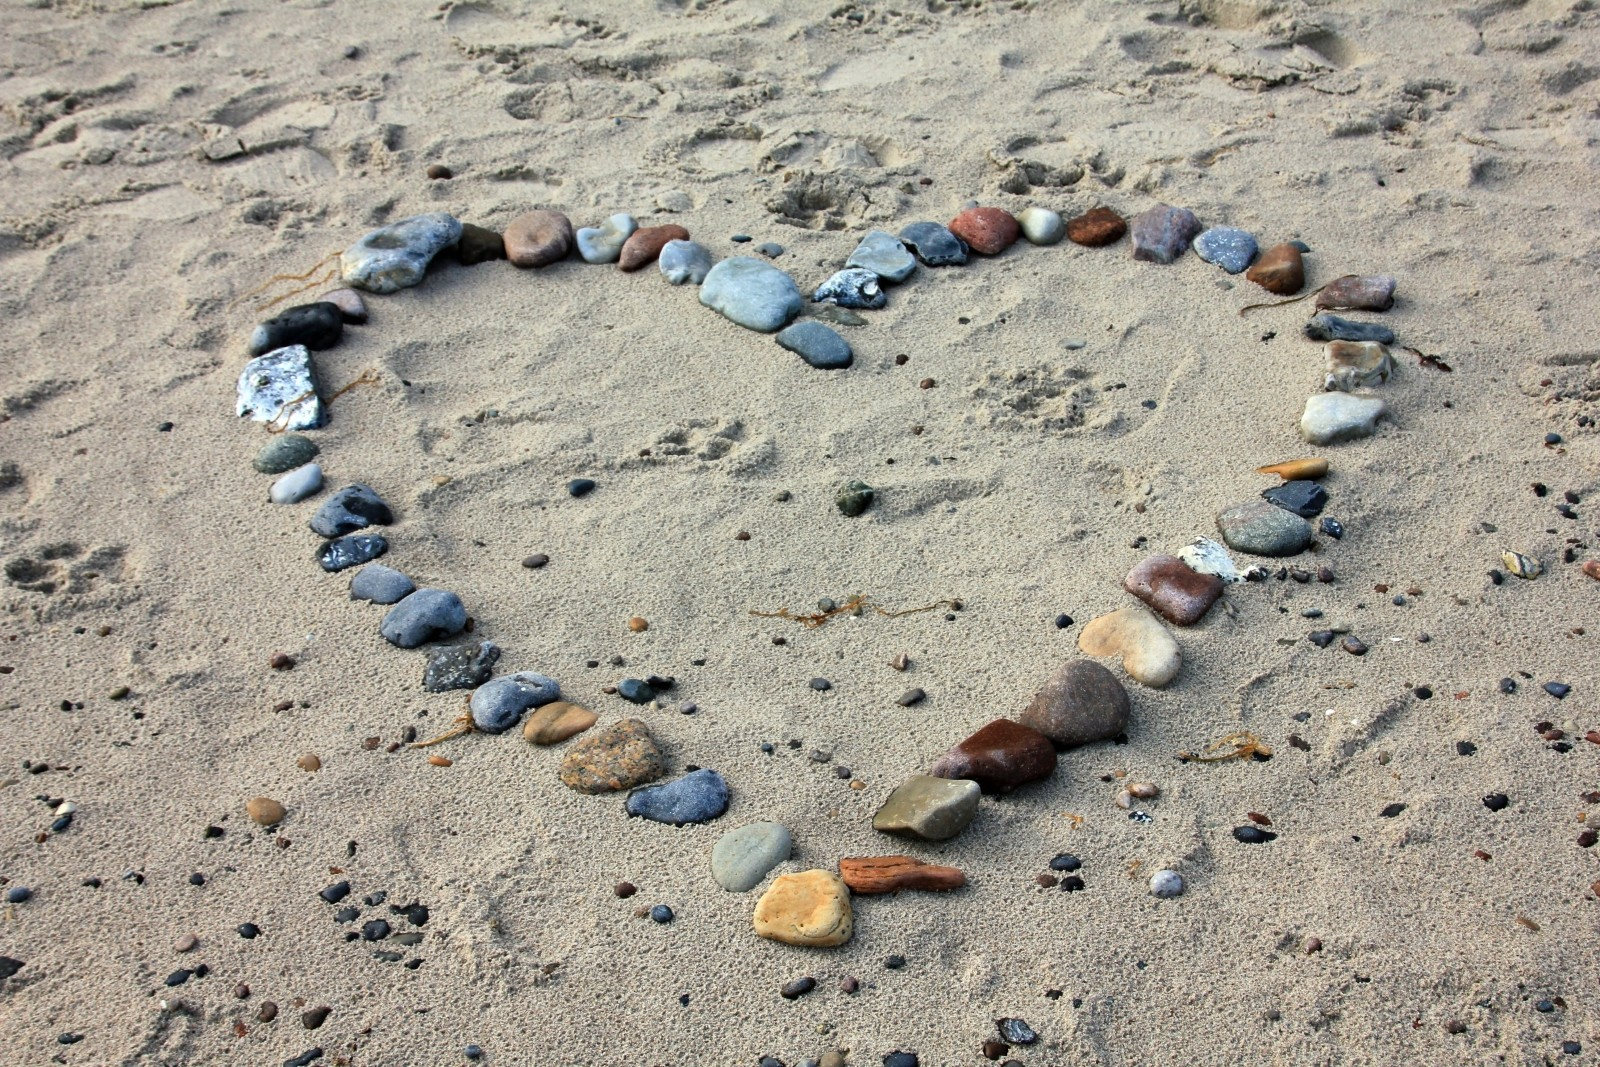 pebbles-in-heartshape-on-sand